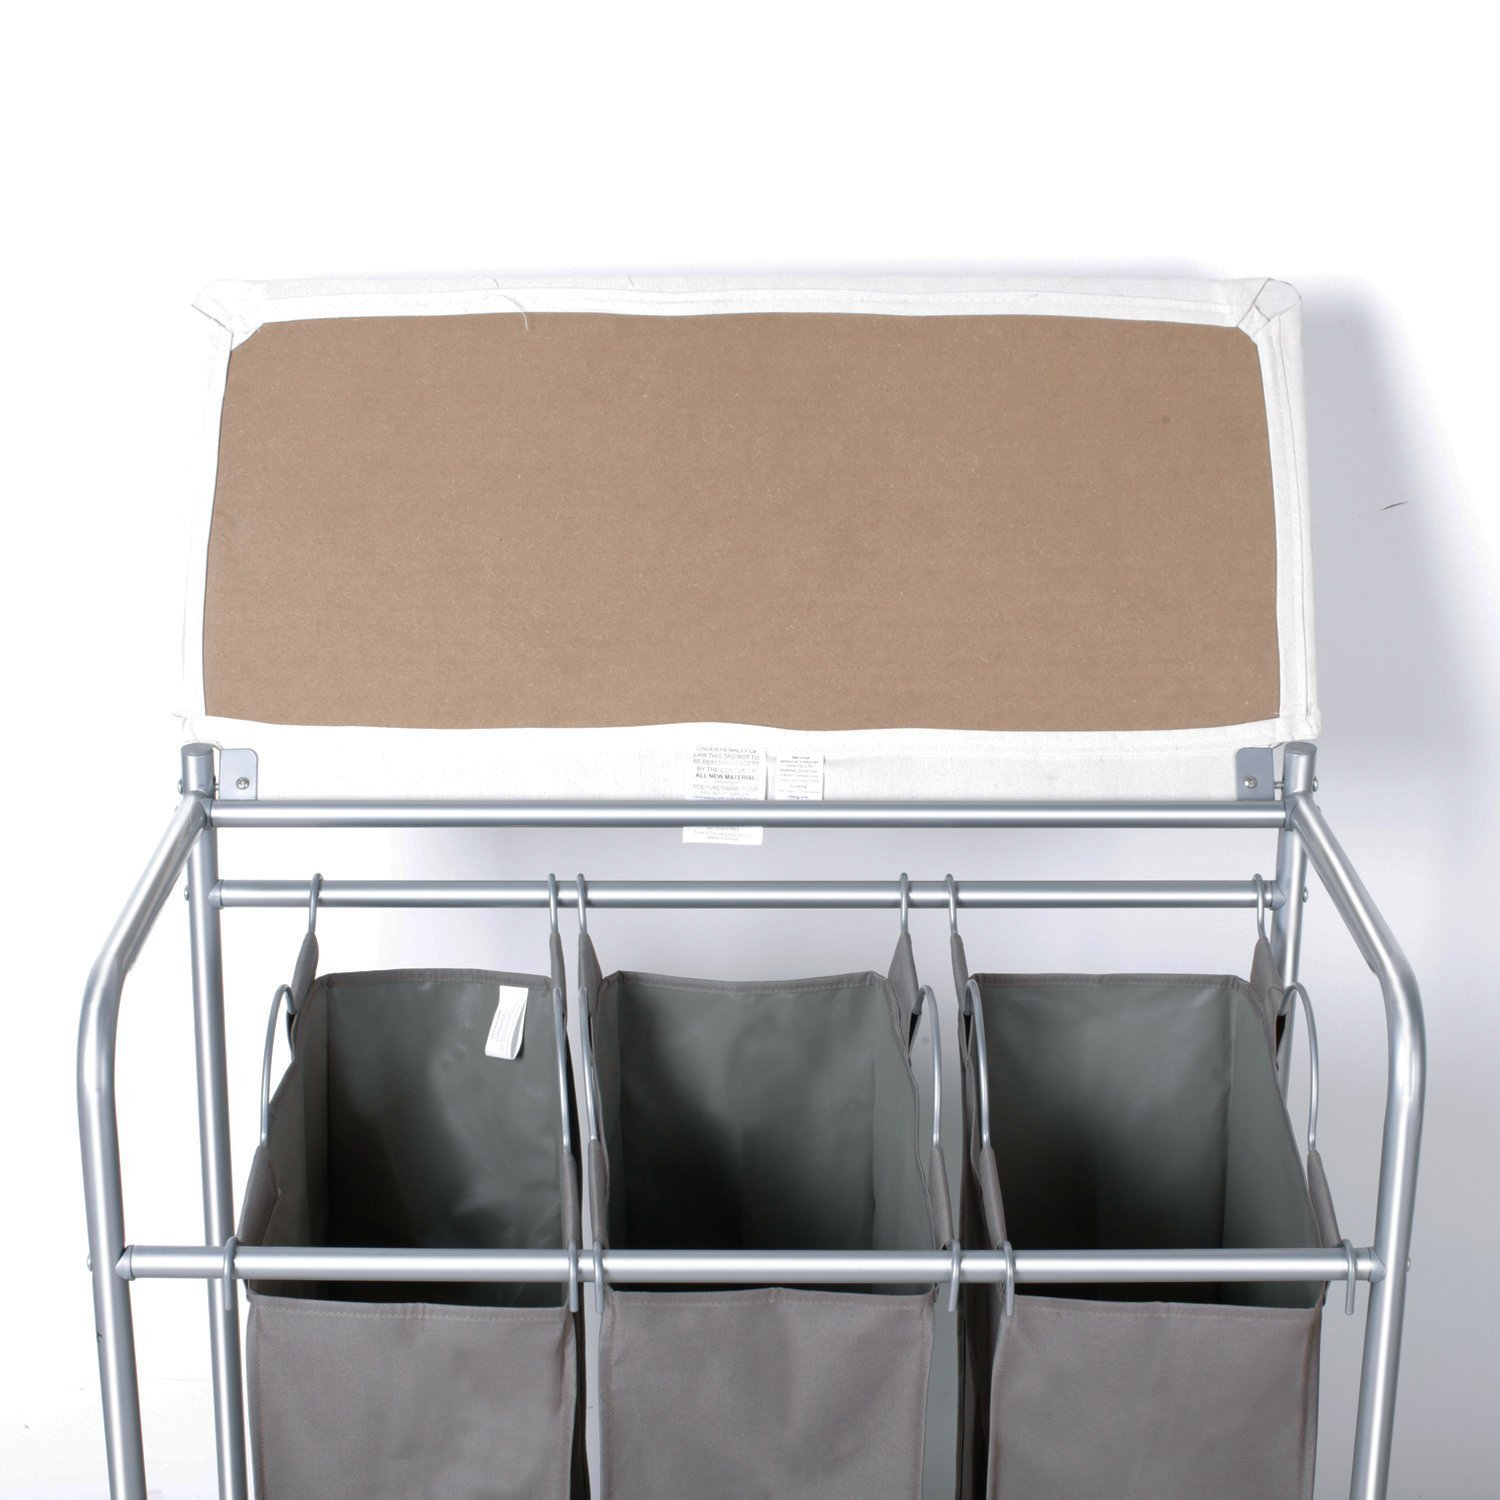 - Shop StorageManiac 3 Lift-off Bags Laundry Sorter With Foldable